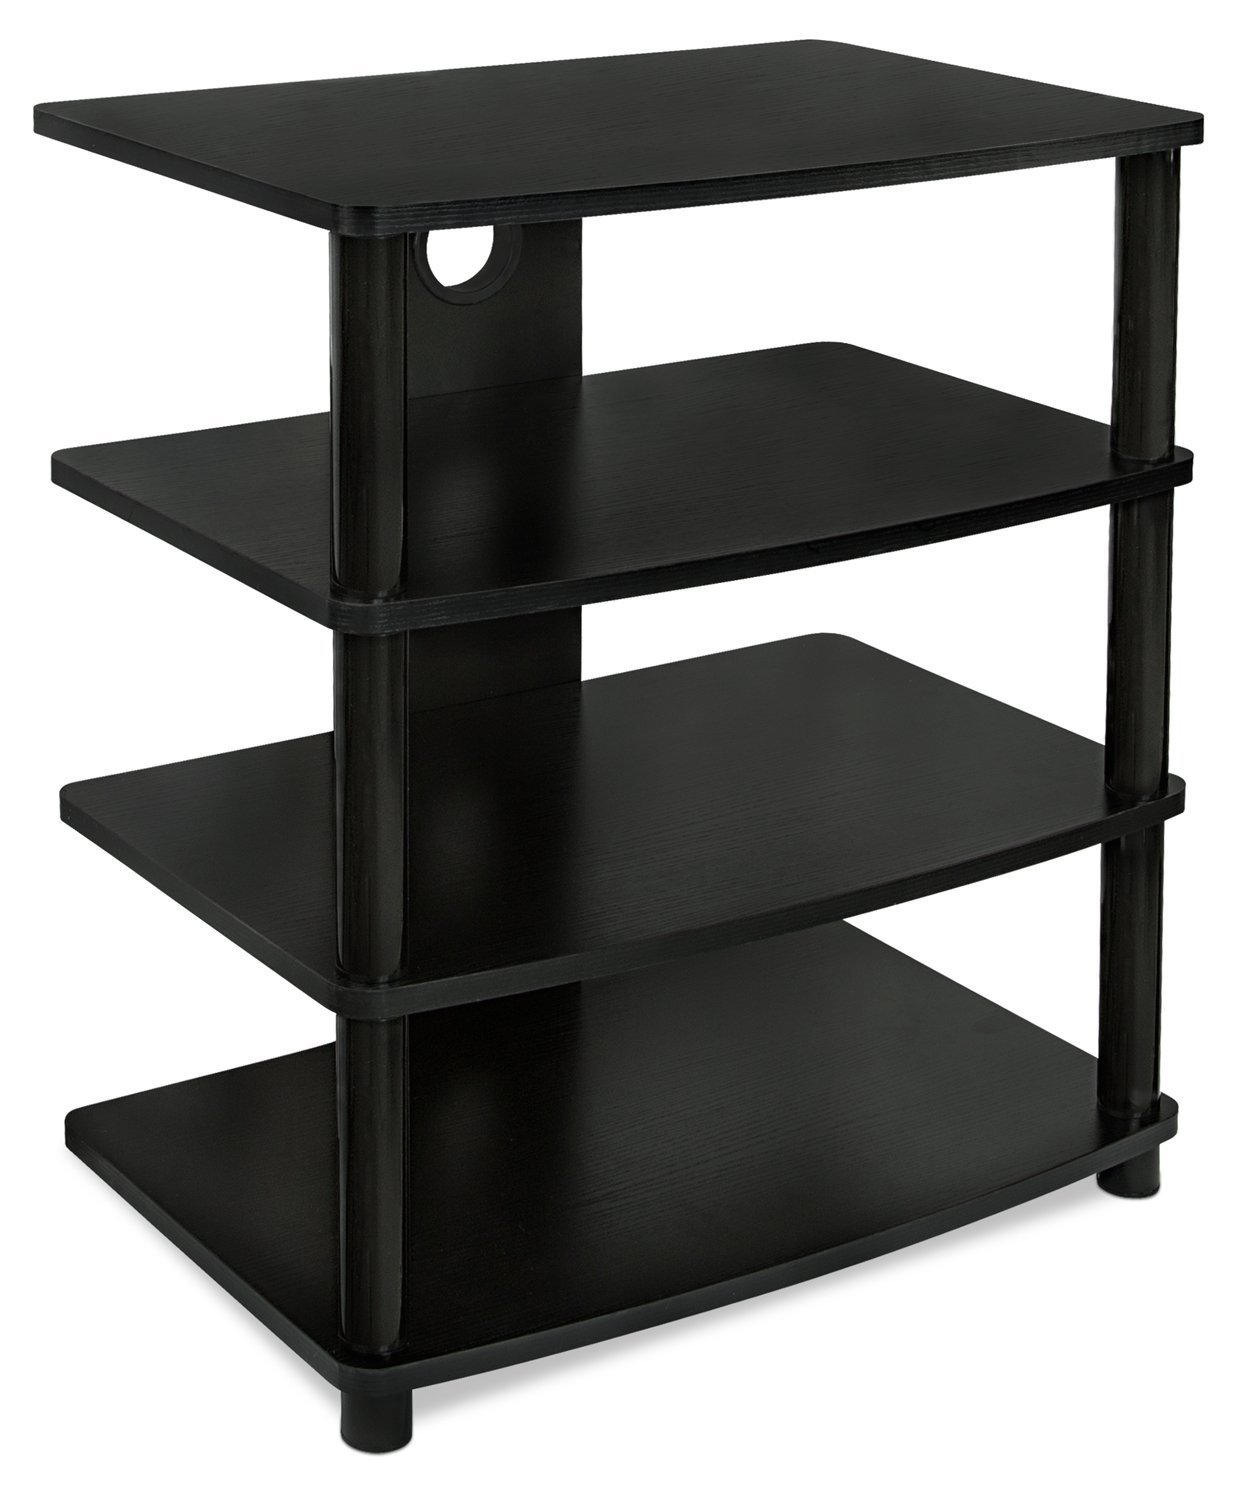 Mount-It! Media Stand Entertainment Center for TV, Audio Video Components, Stereo Equipment, Gaming Consoles, Streaming Devices, 4 Shelves, Black by Mount-It!